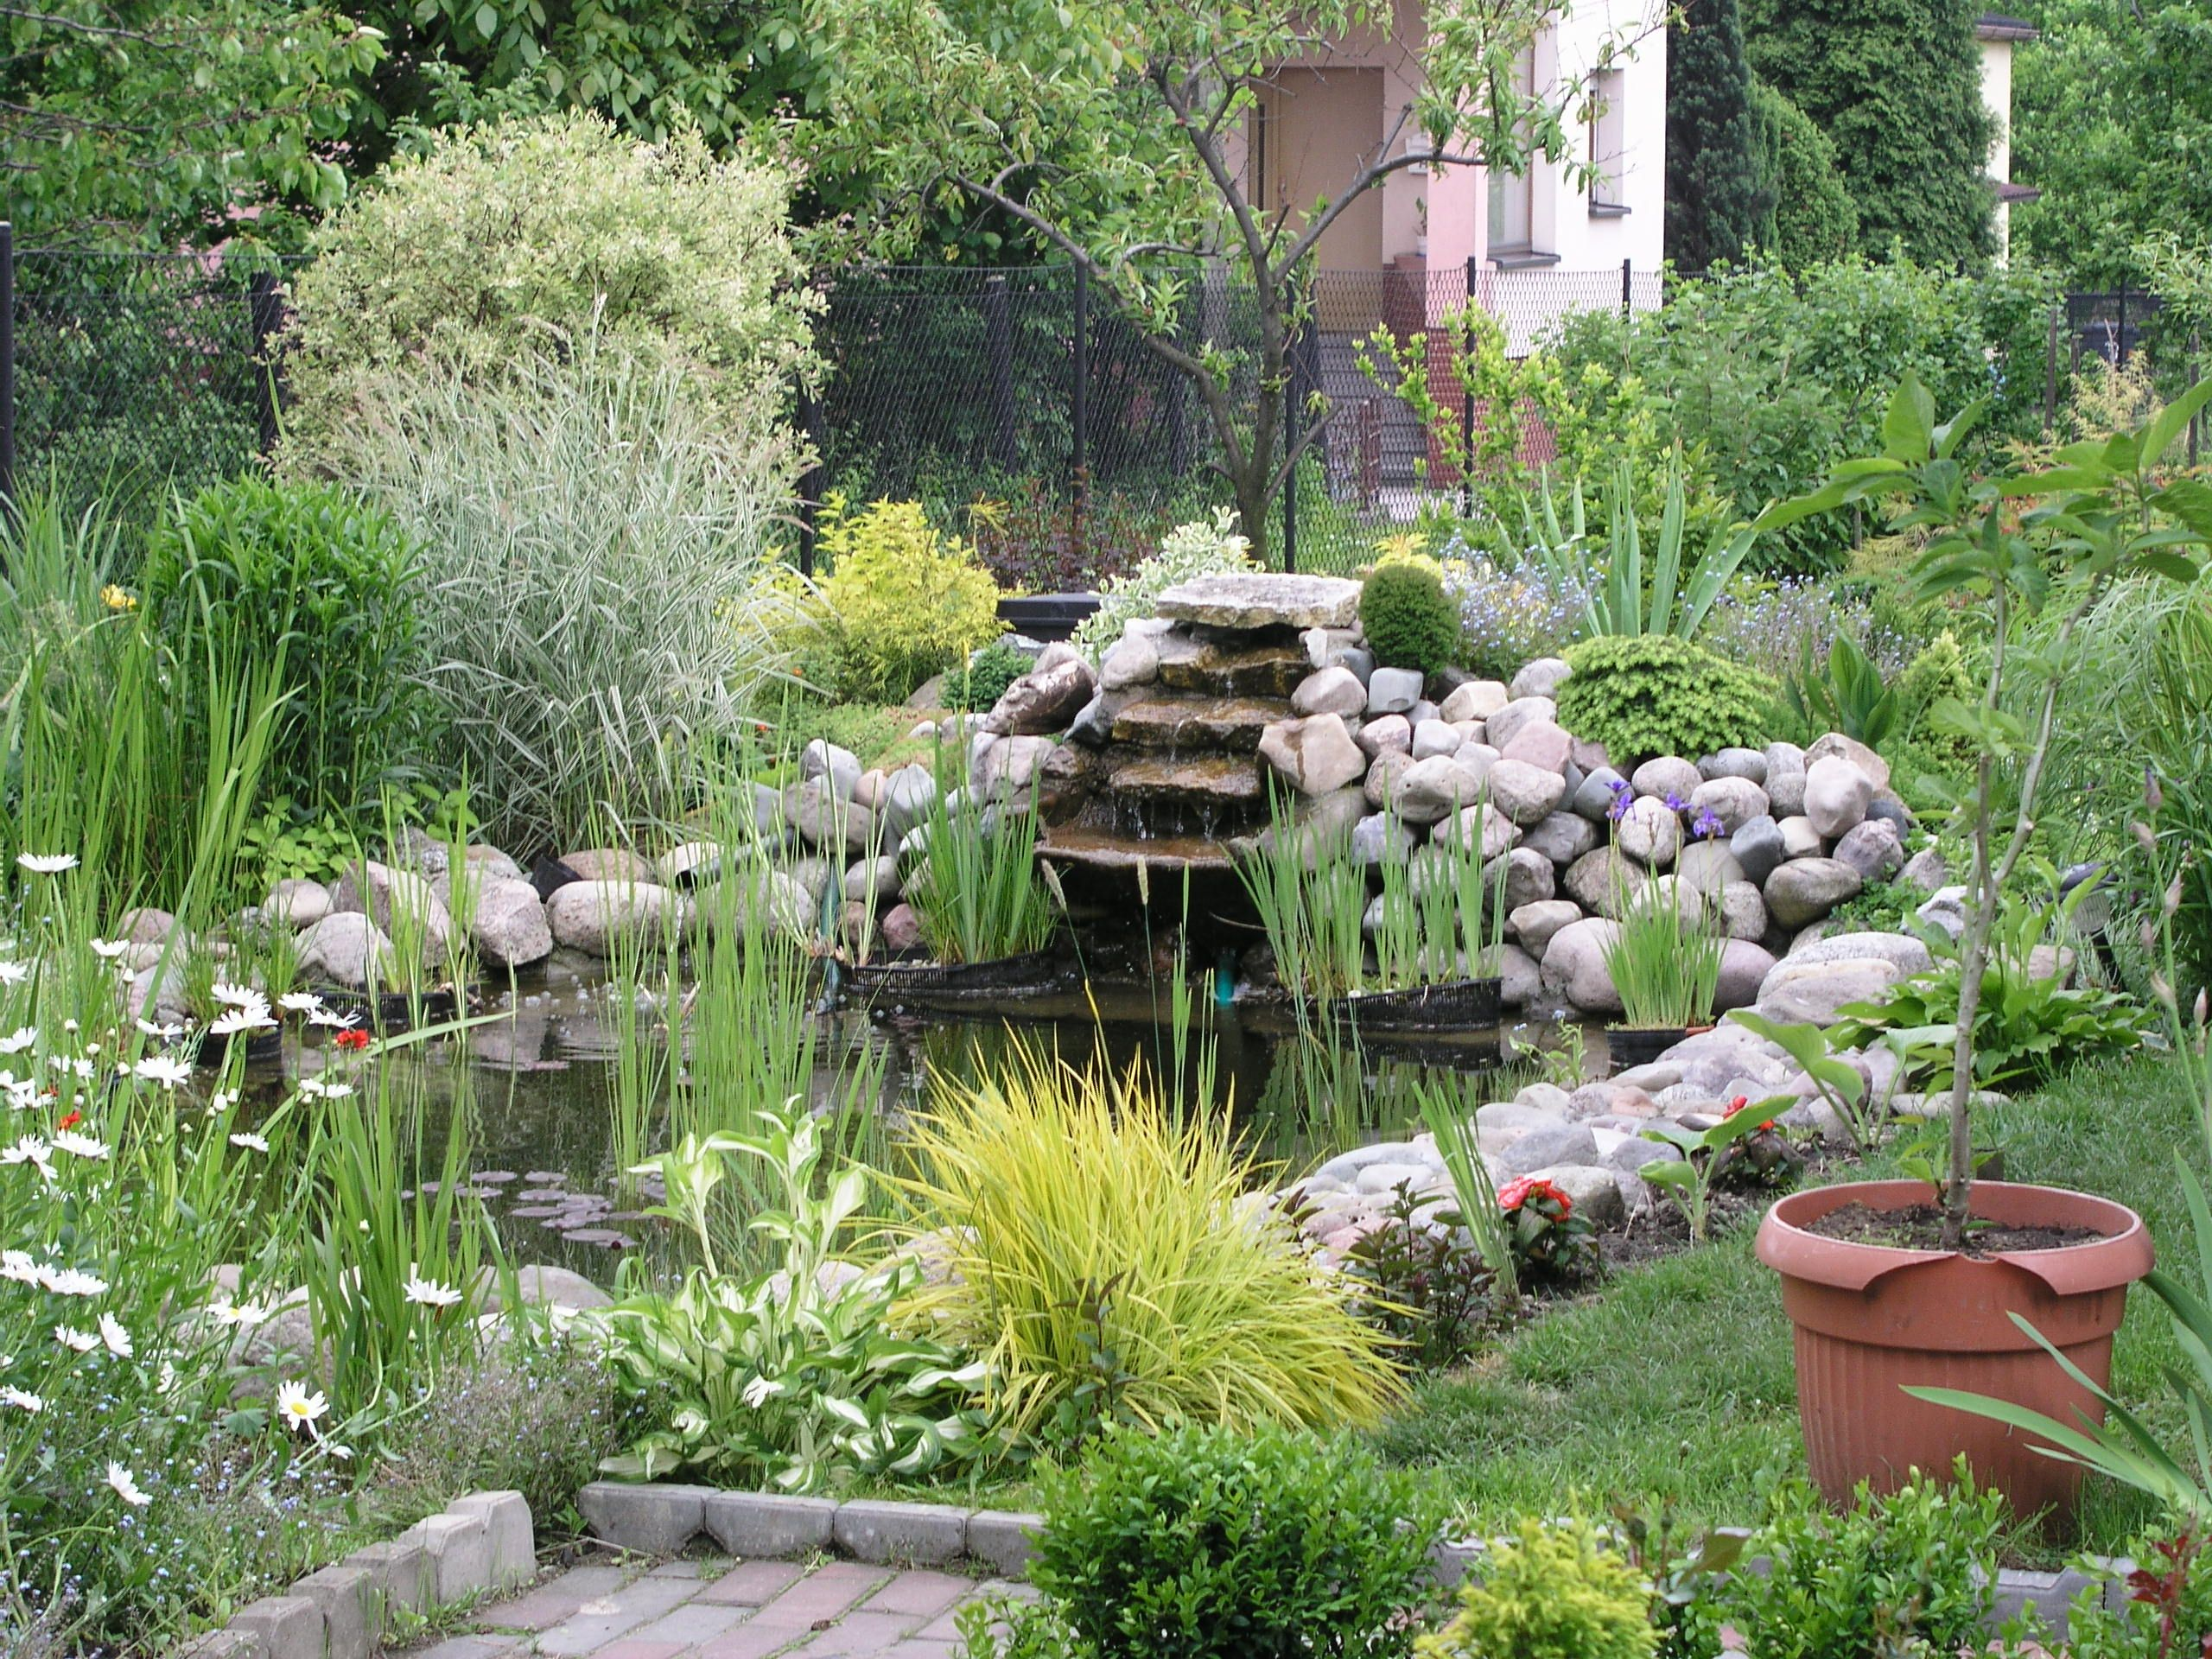 File garden pond wikimedia commons for Outdoor fish ponds designs